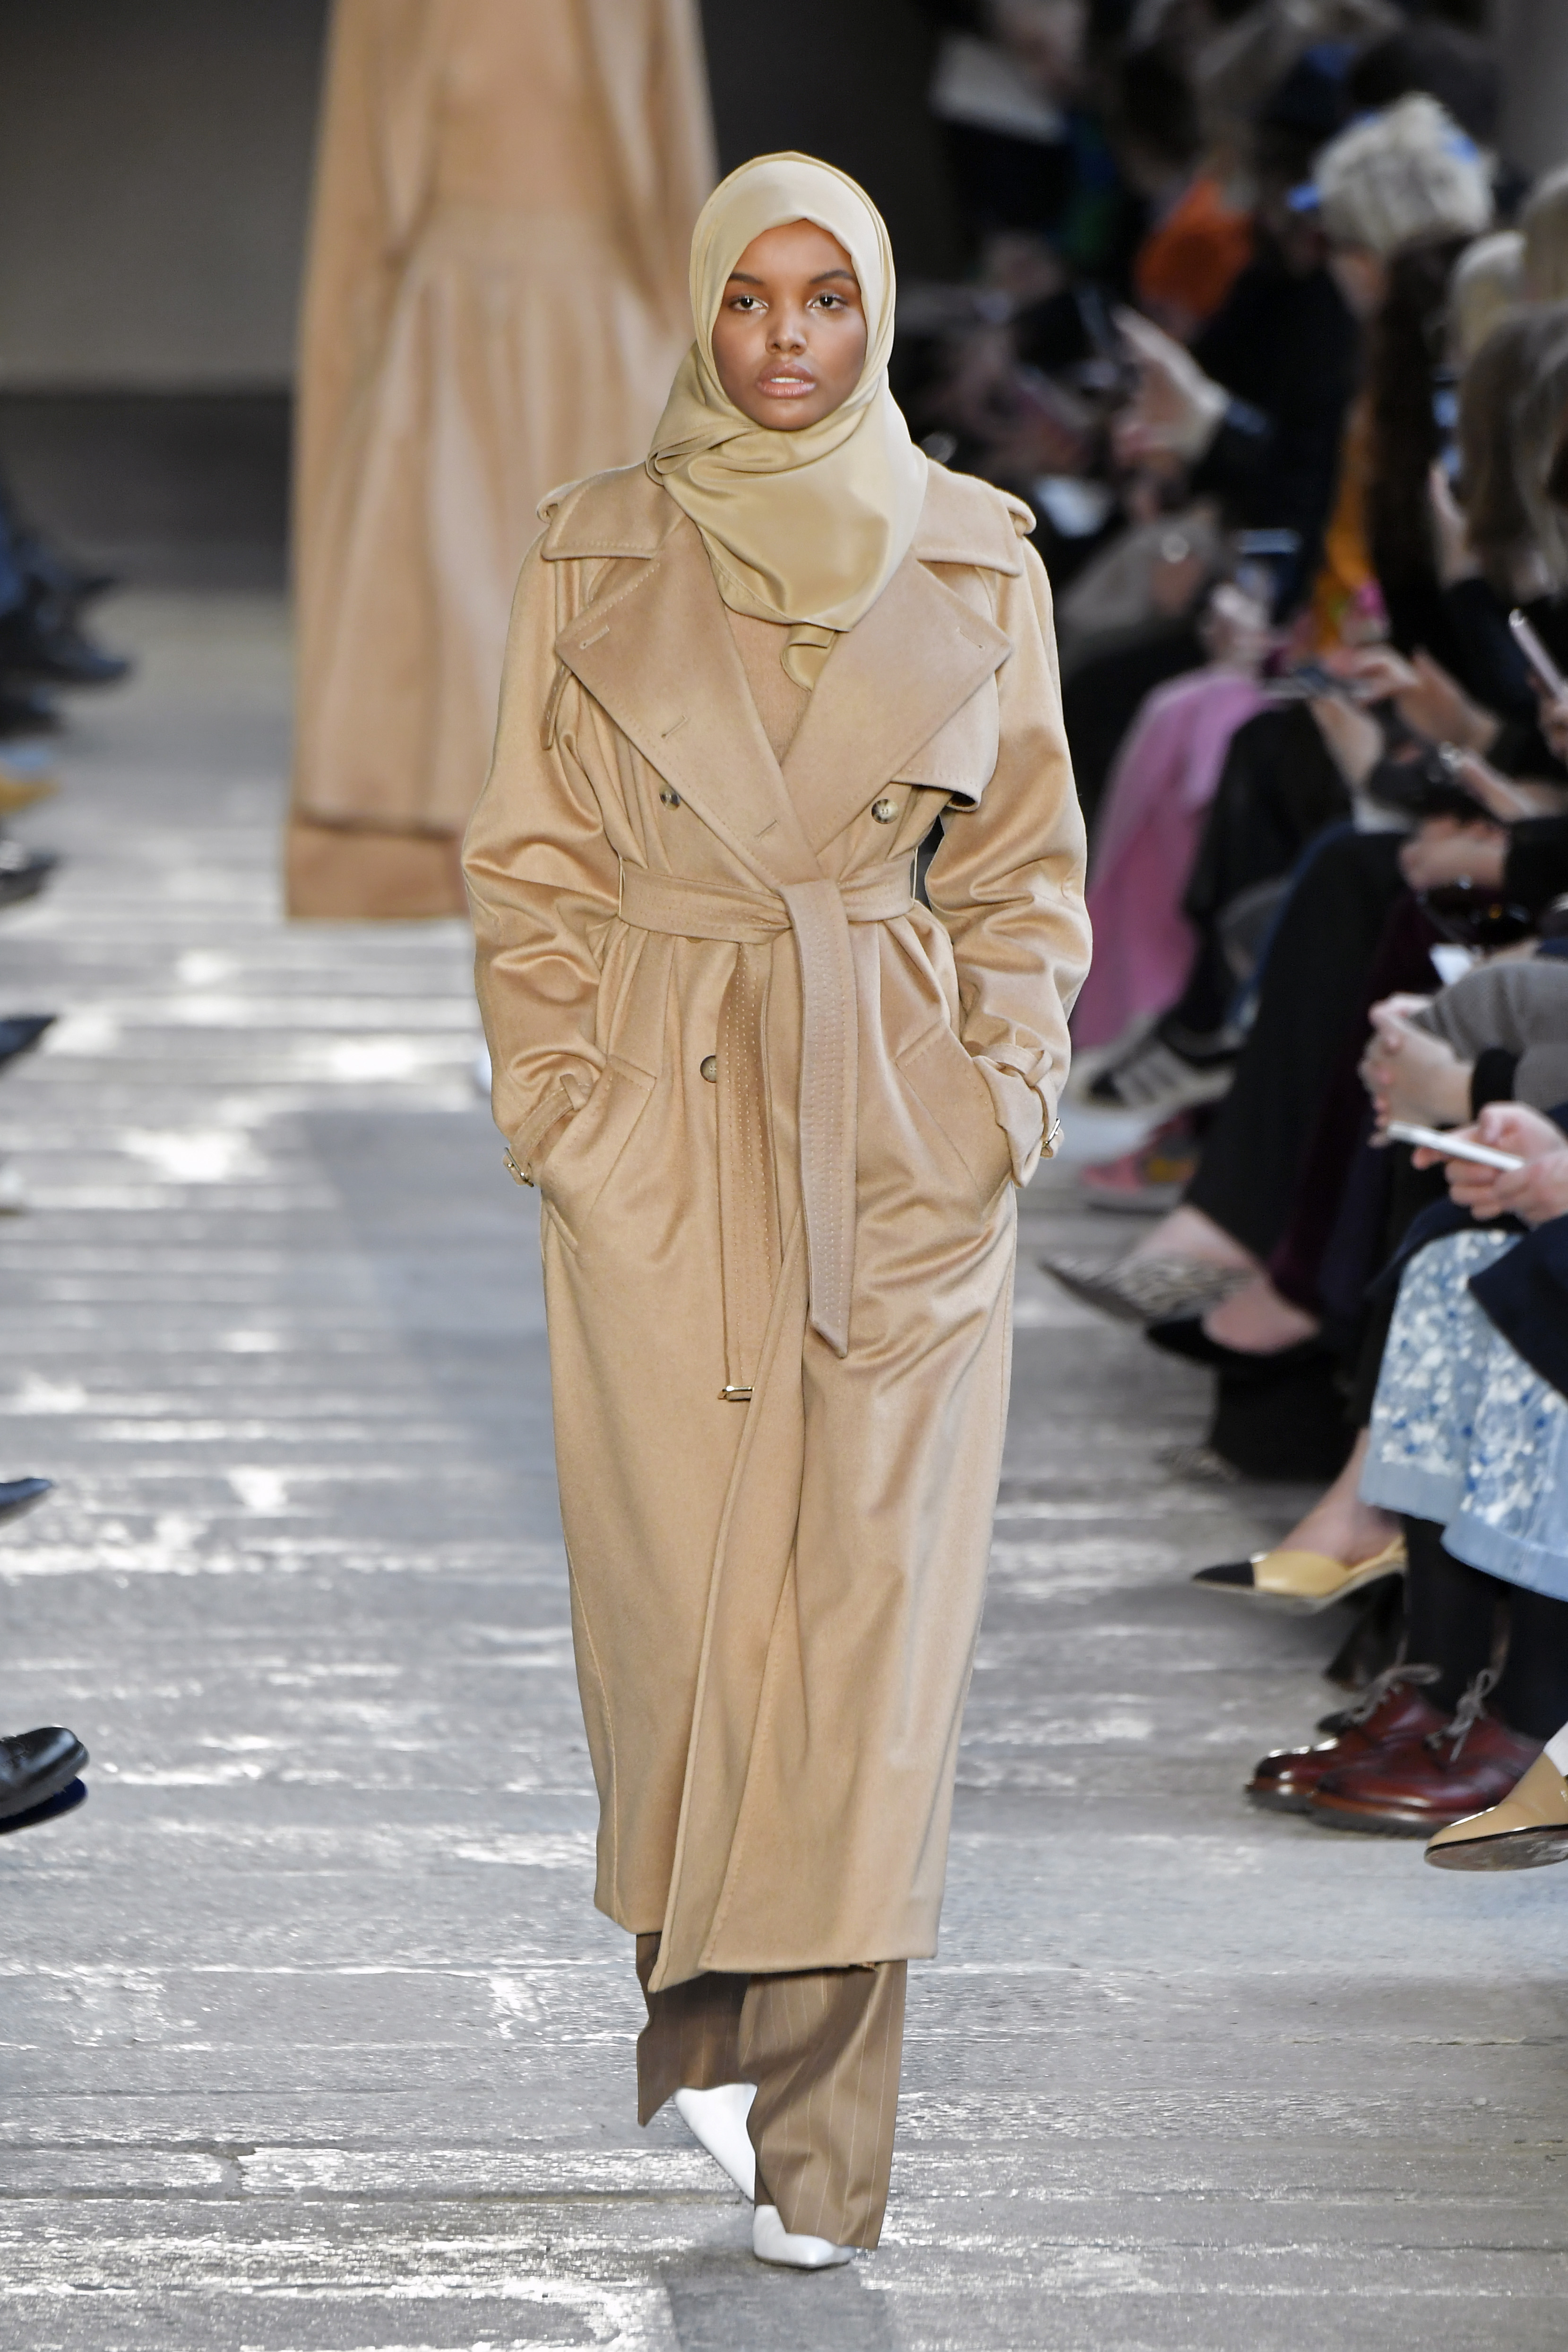 MILAN, ITALY - FEBRUARY 23: Halima Aden walks the runway at the Max Mara show during Milan Fashion Week Fall/Winter 2017/18 on February 23, 2017 in Milan, Italy. (Photo by Victor Boyko/Getty Images)